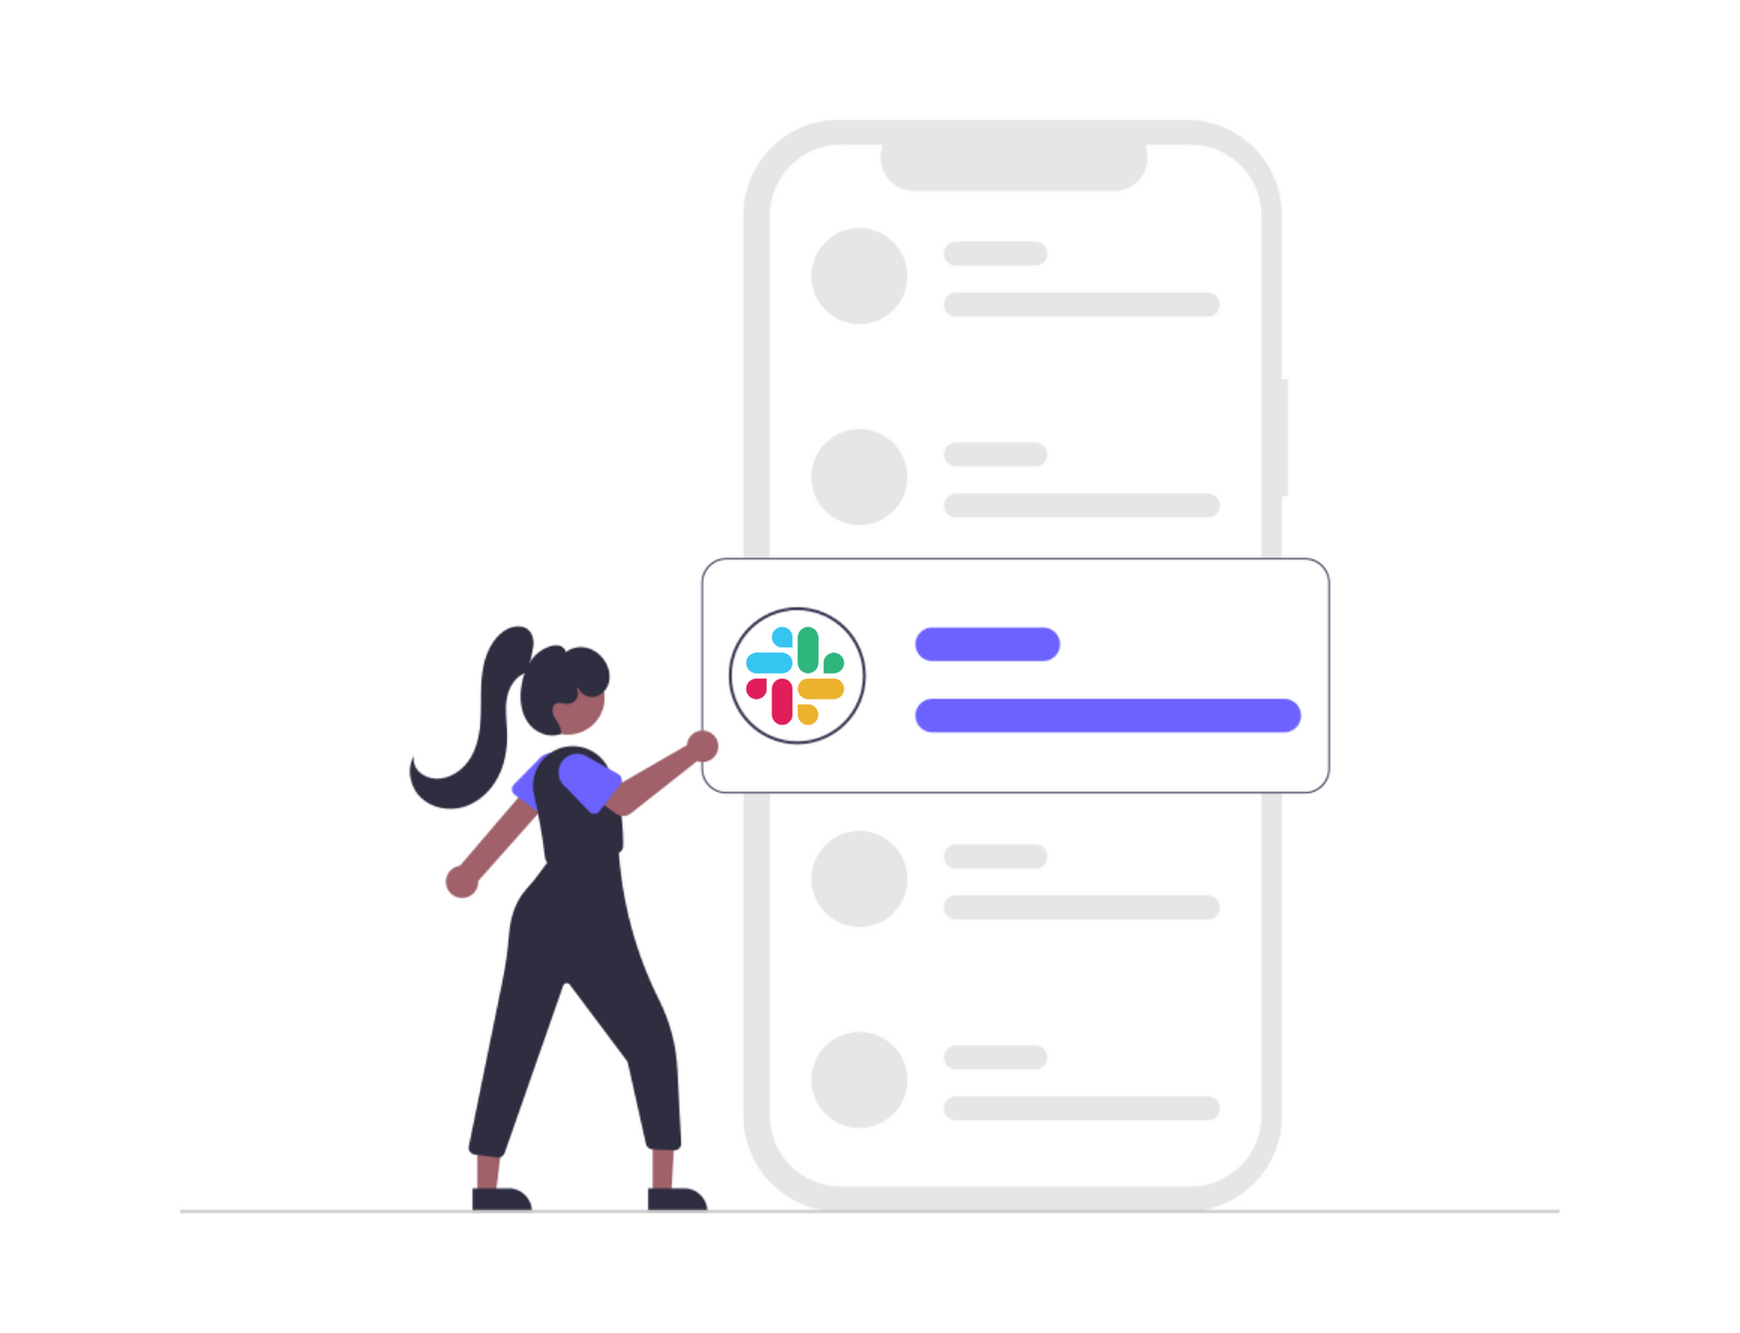 Using Slack 'Scheduled Send' + Reclaim.ai to Schedule Messages